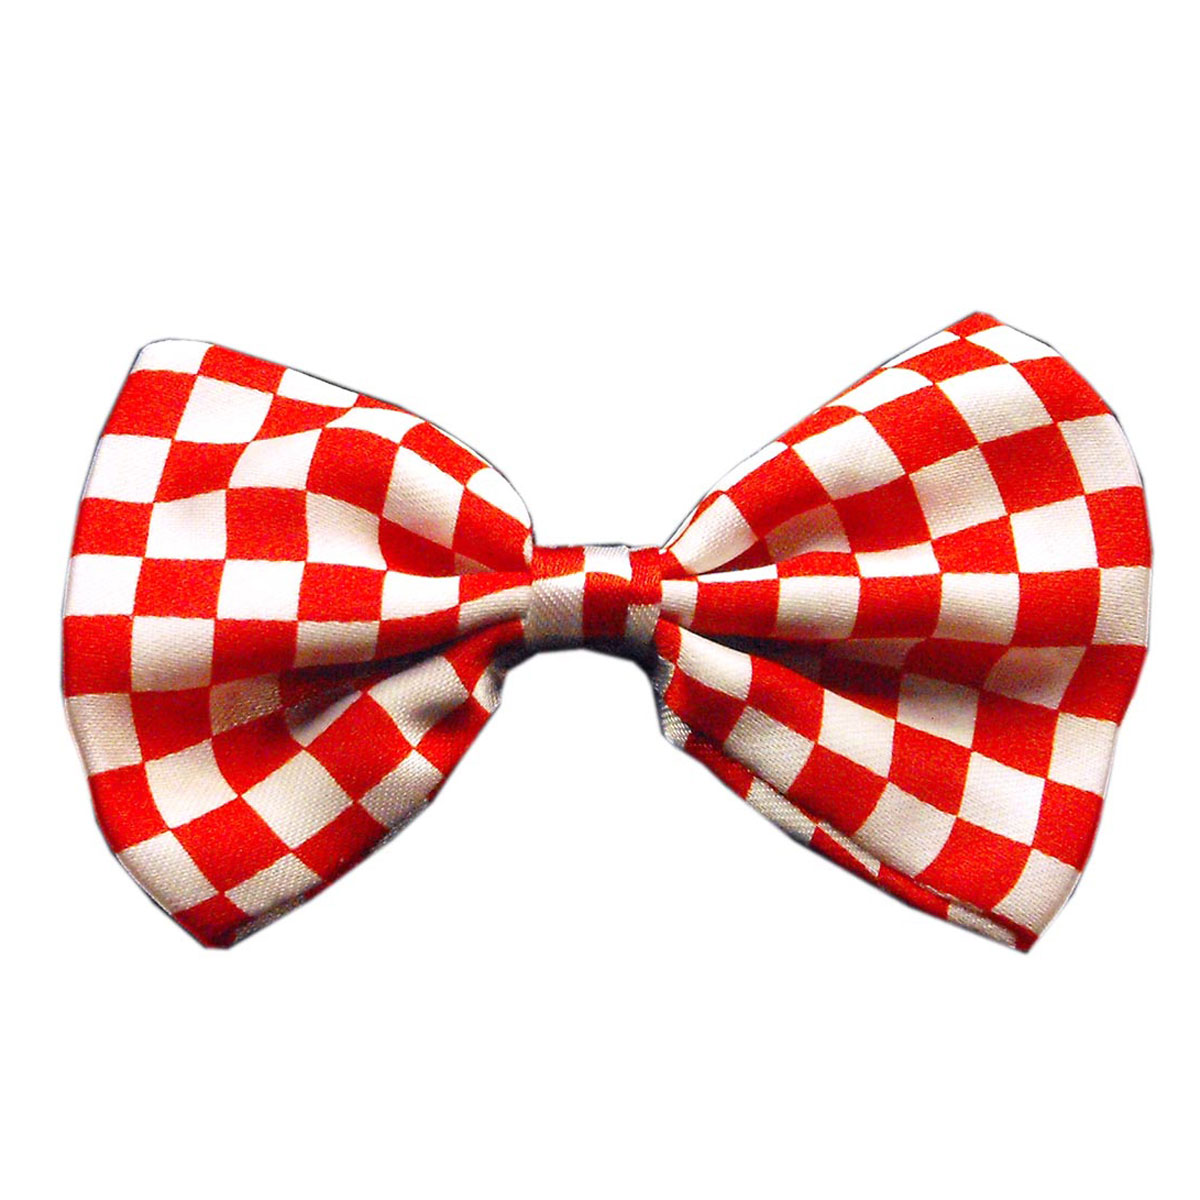 Browse our range of Bow Ties with Checked Pattern This site uses cookies to provide and improve your shopping experience. By continuing to use this site, you agree to accept these cookies.